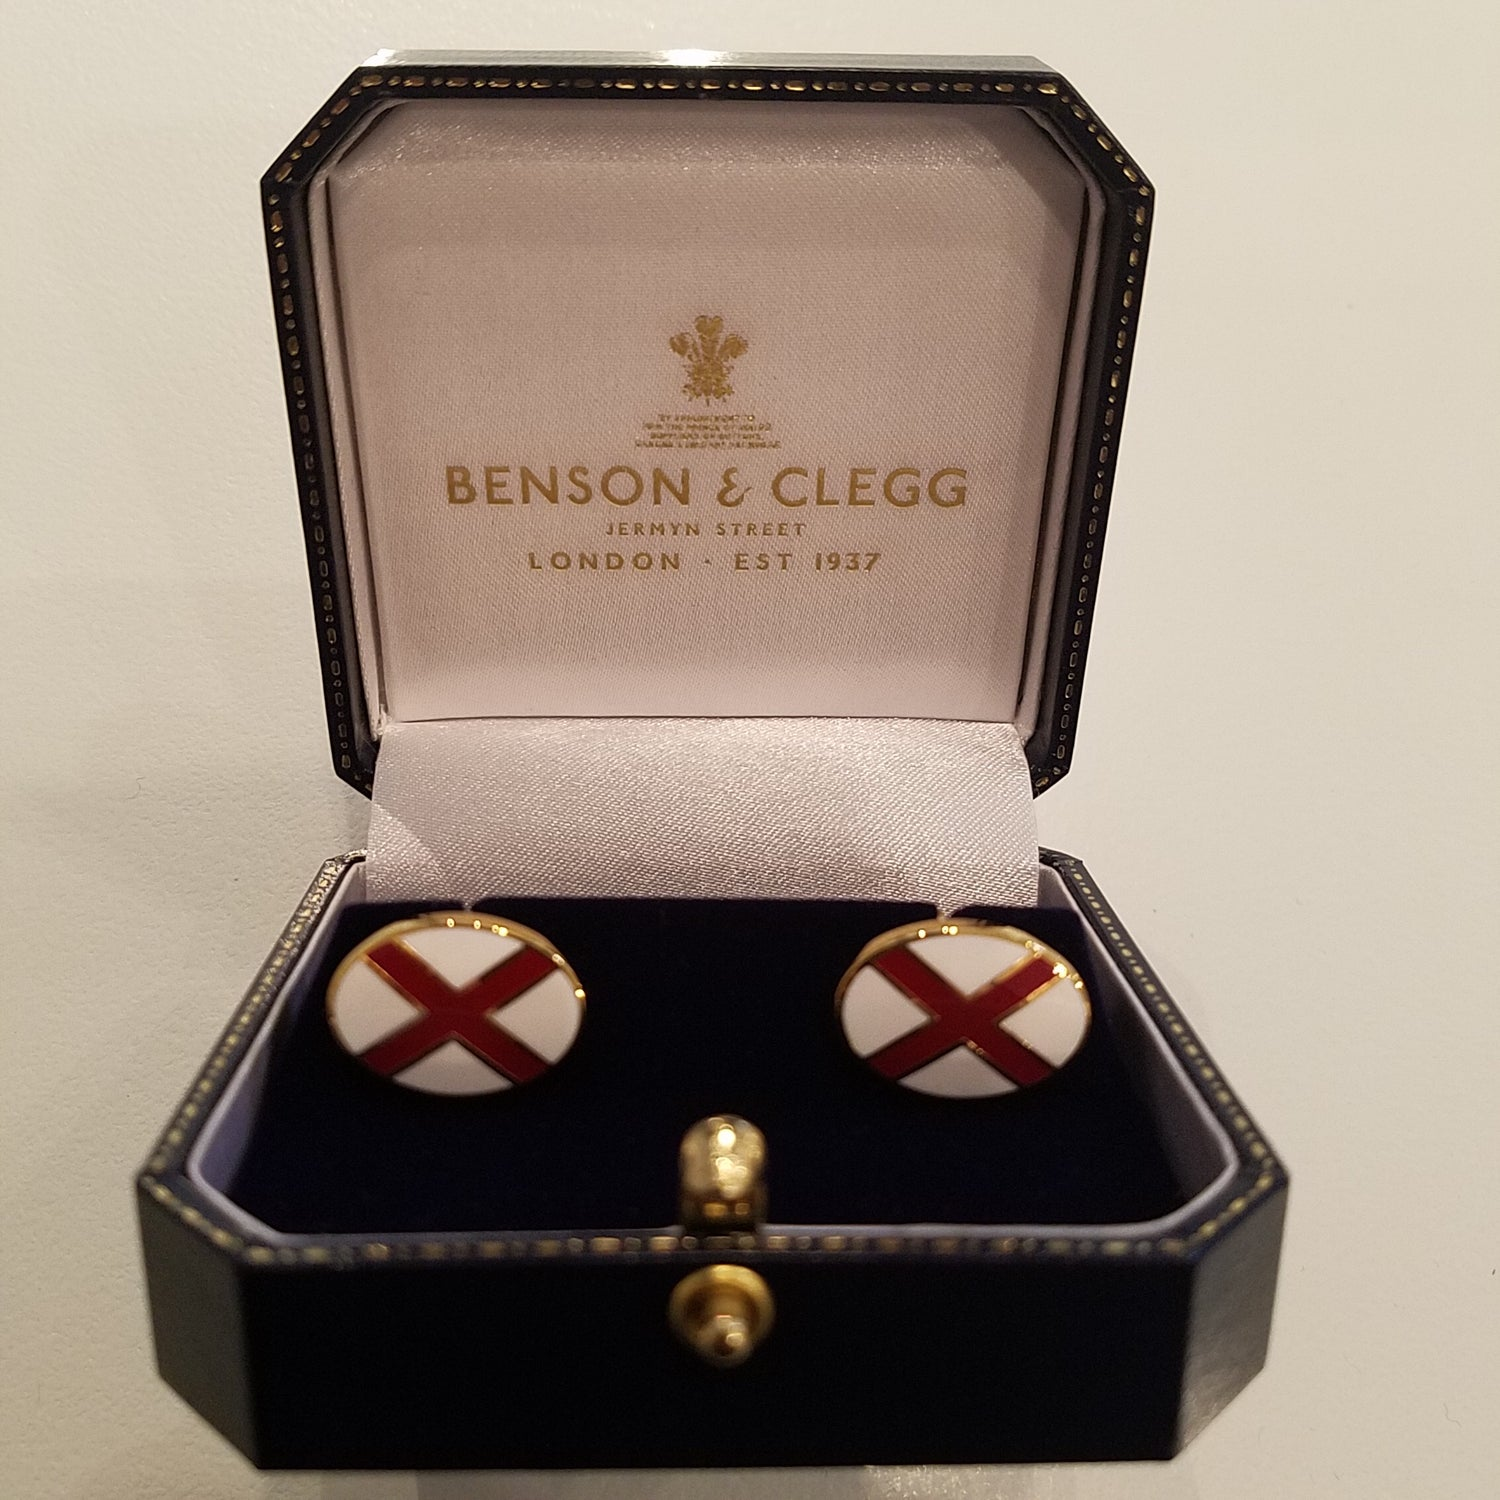 Benson & Clegg St. Patricks Cross Enamel Cufflinks